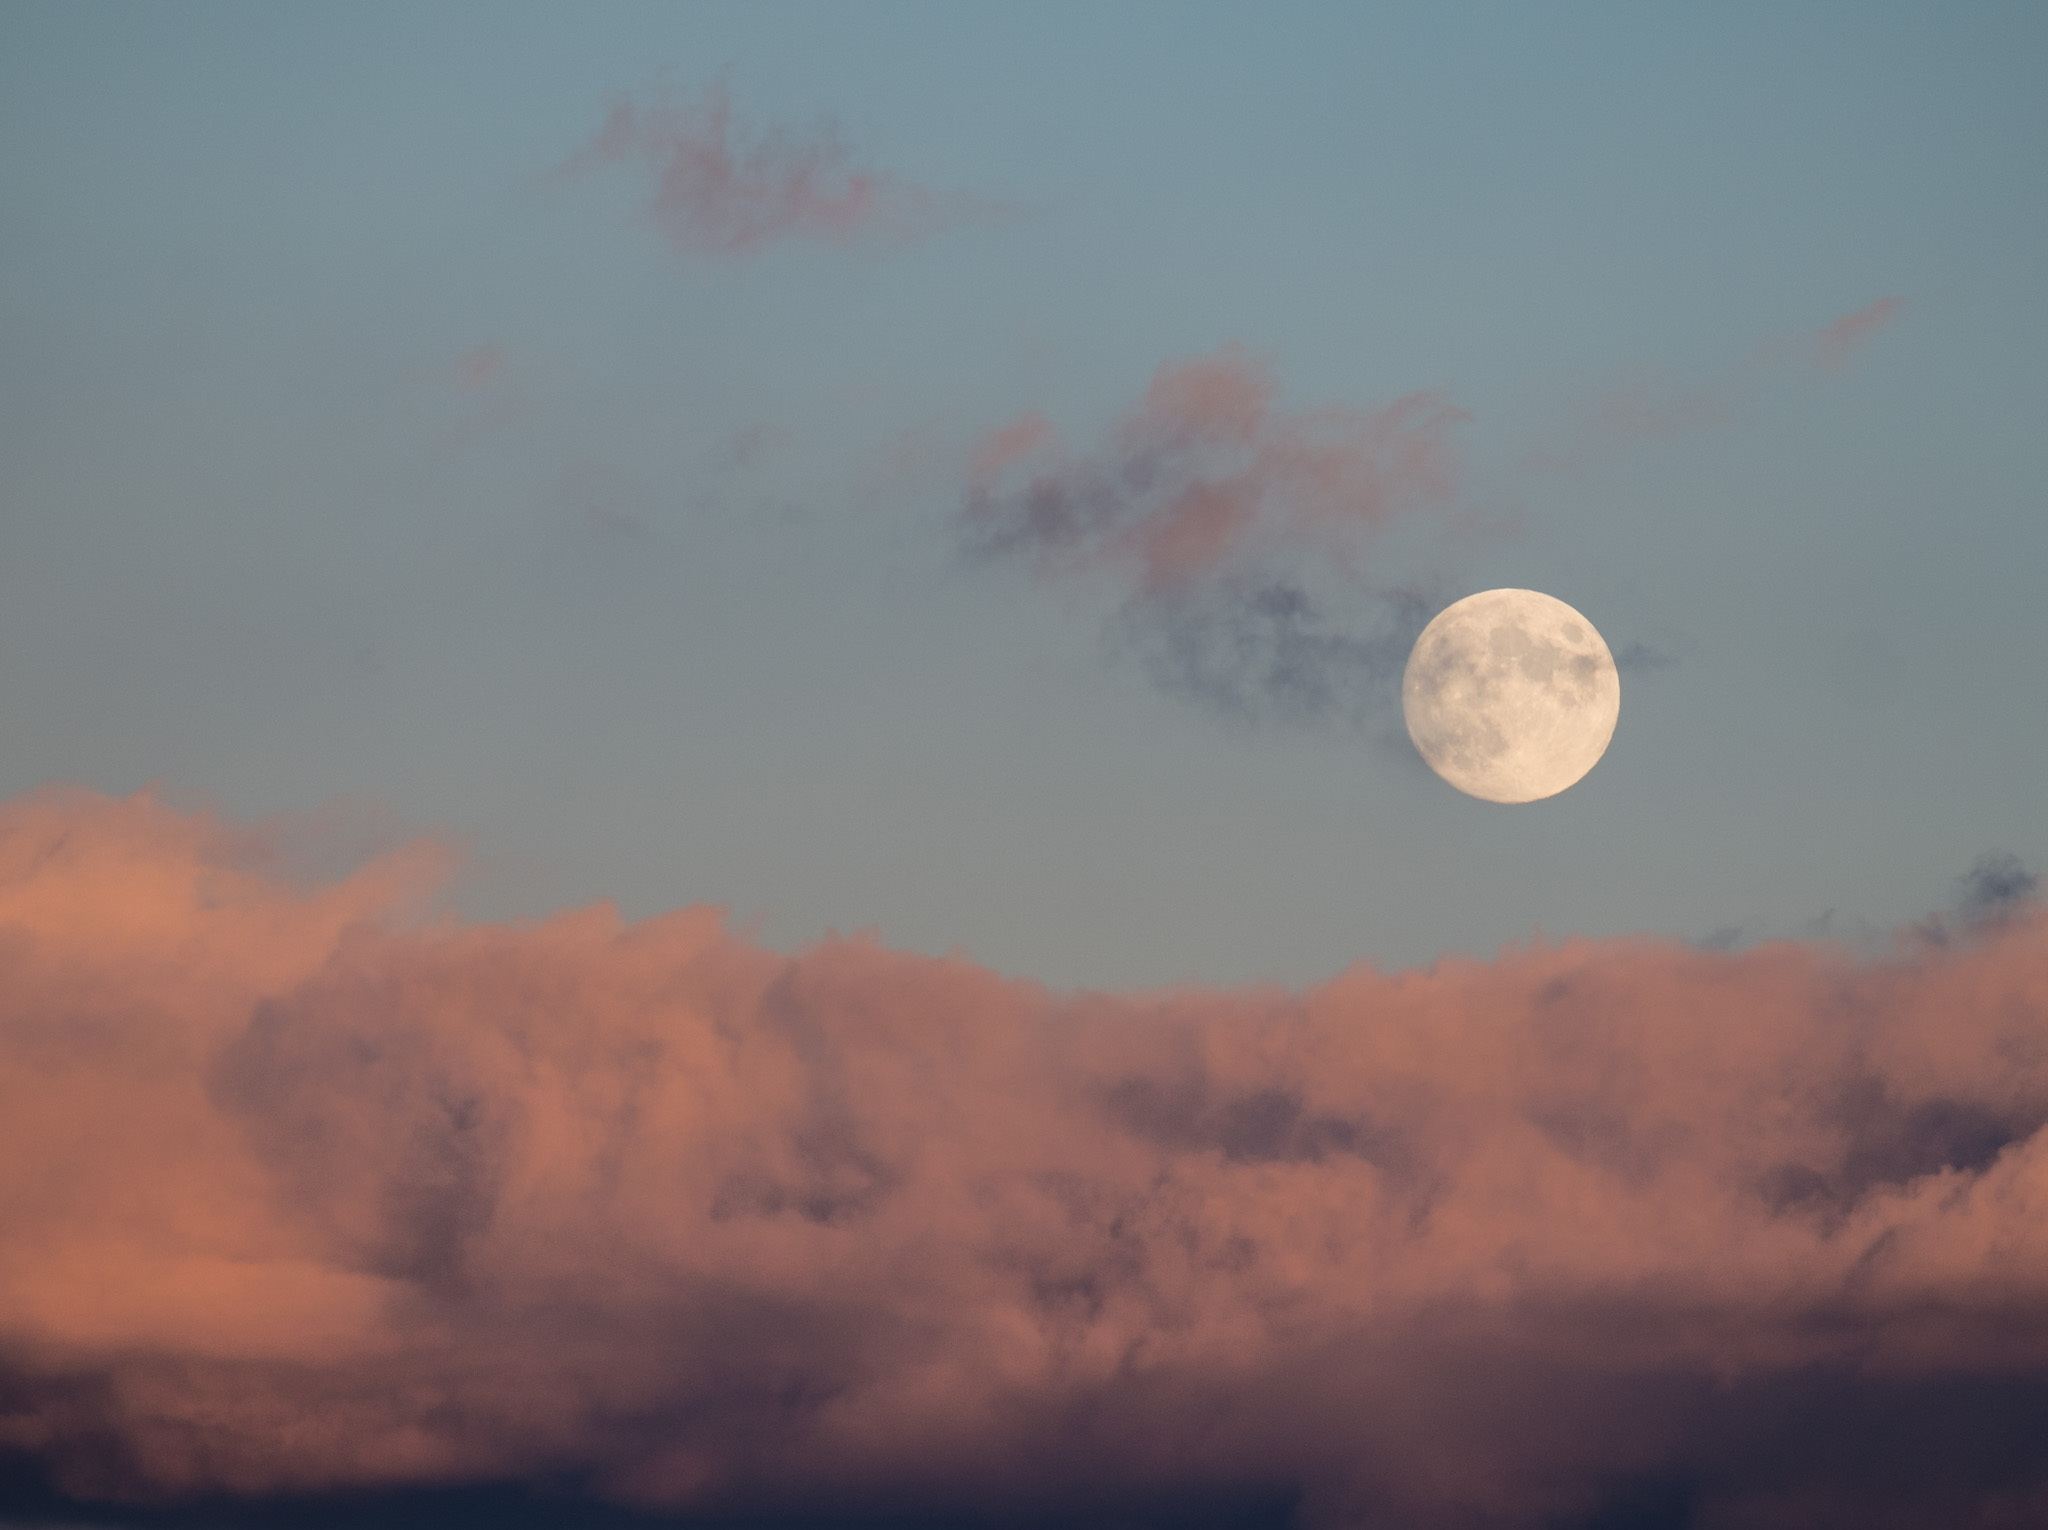 Moon over turbulent clouds